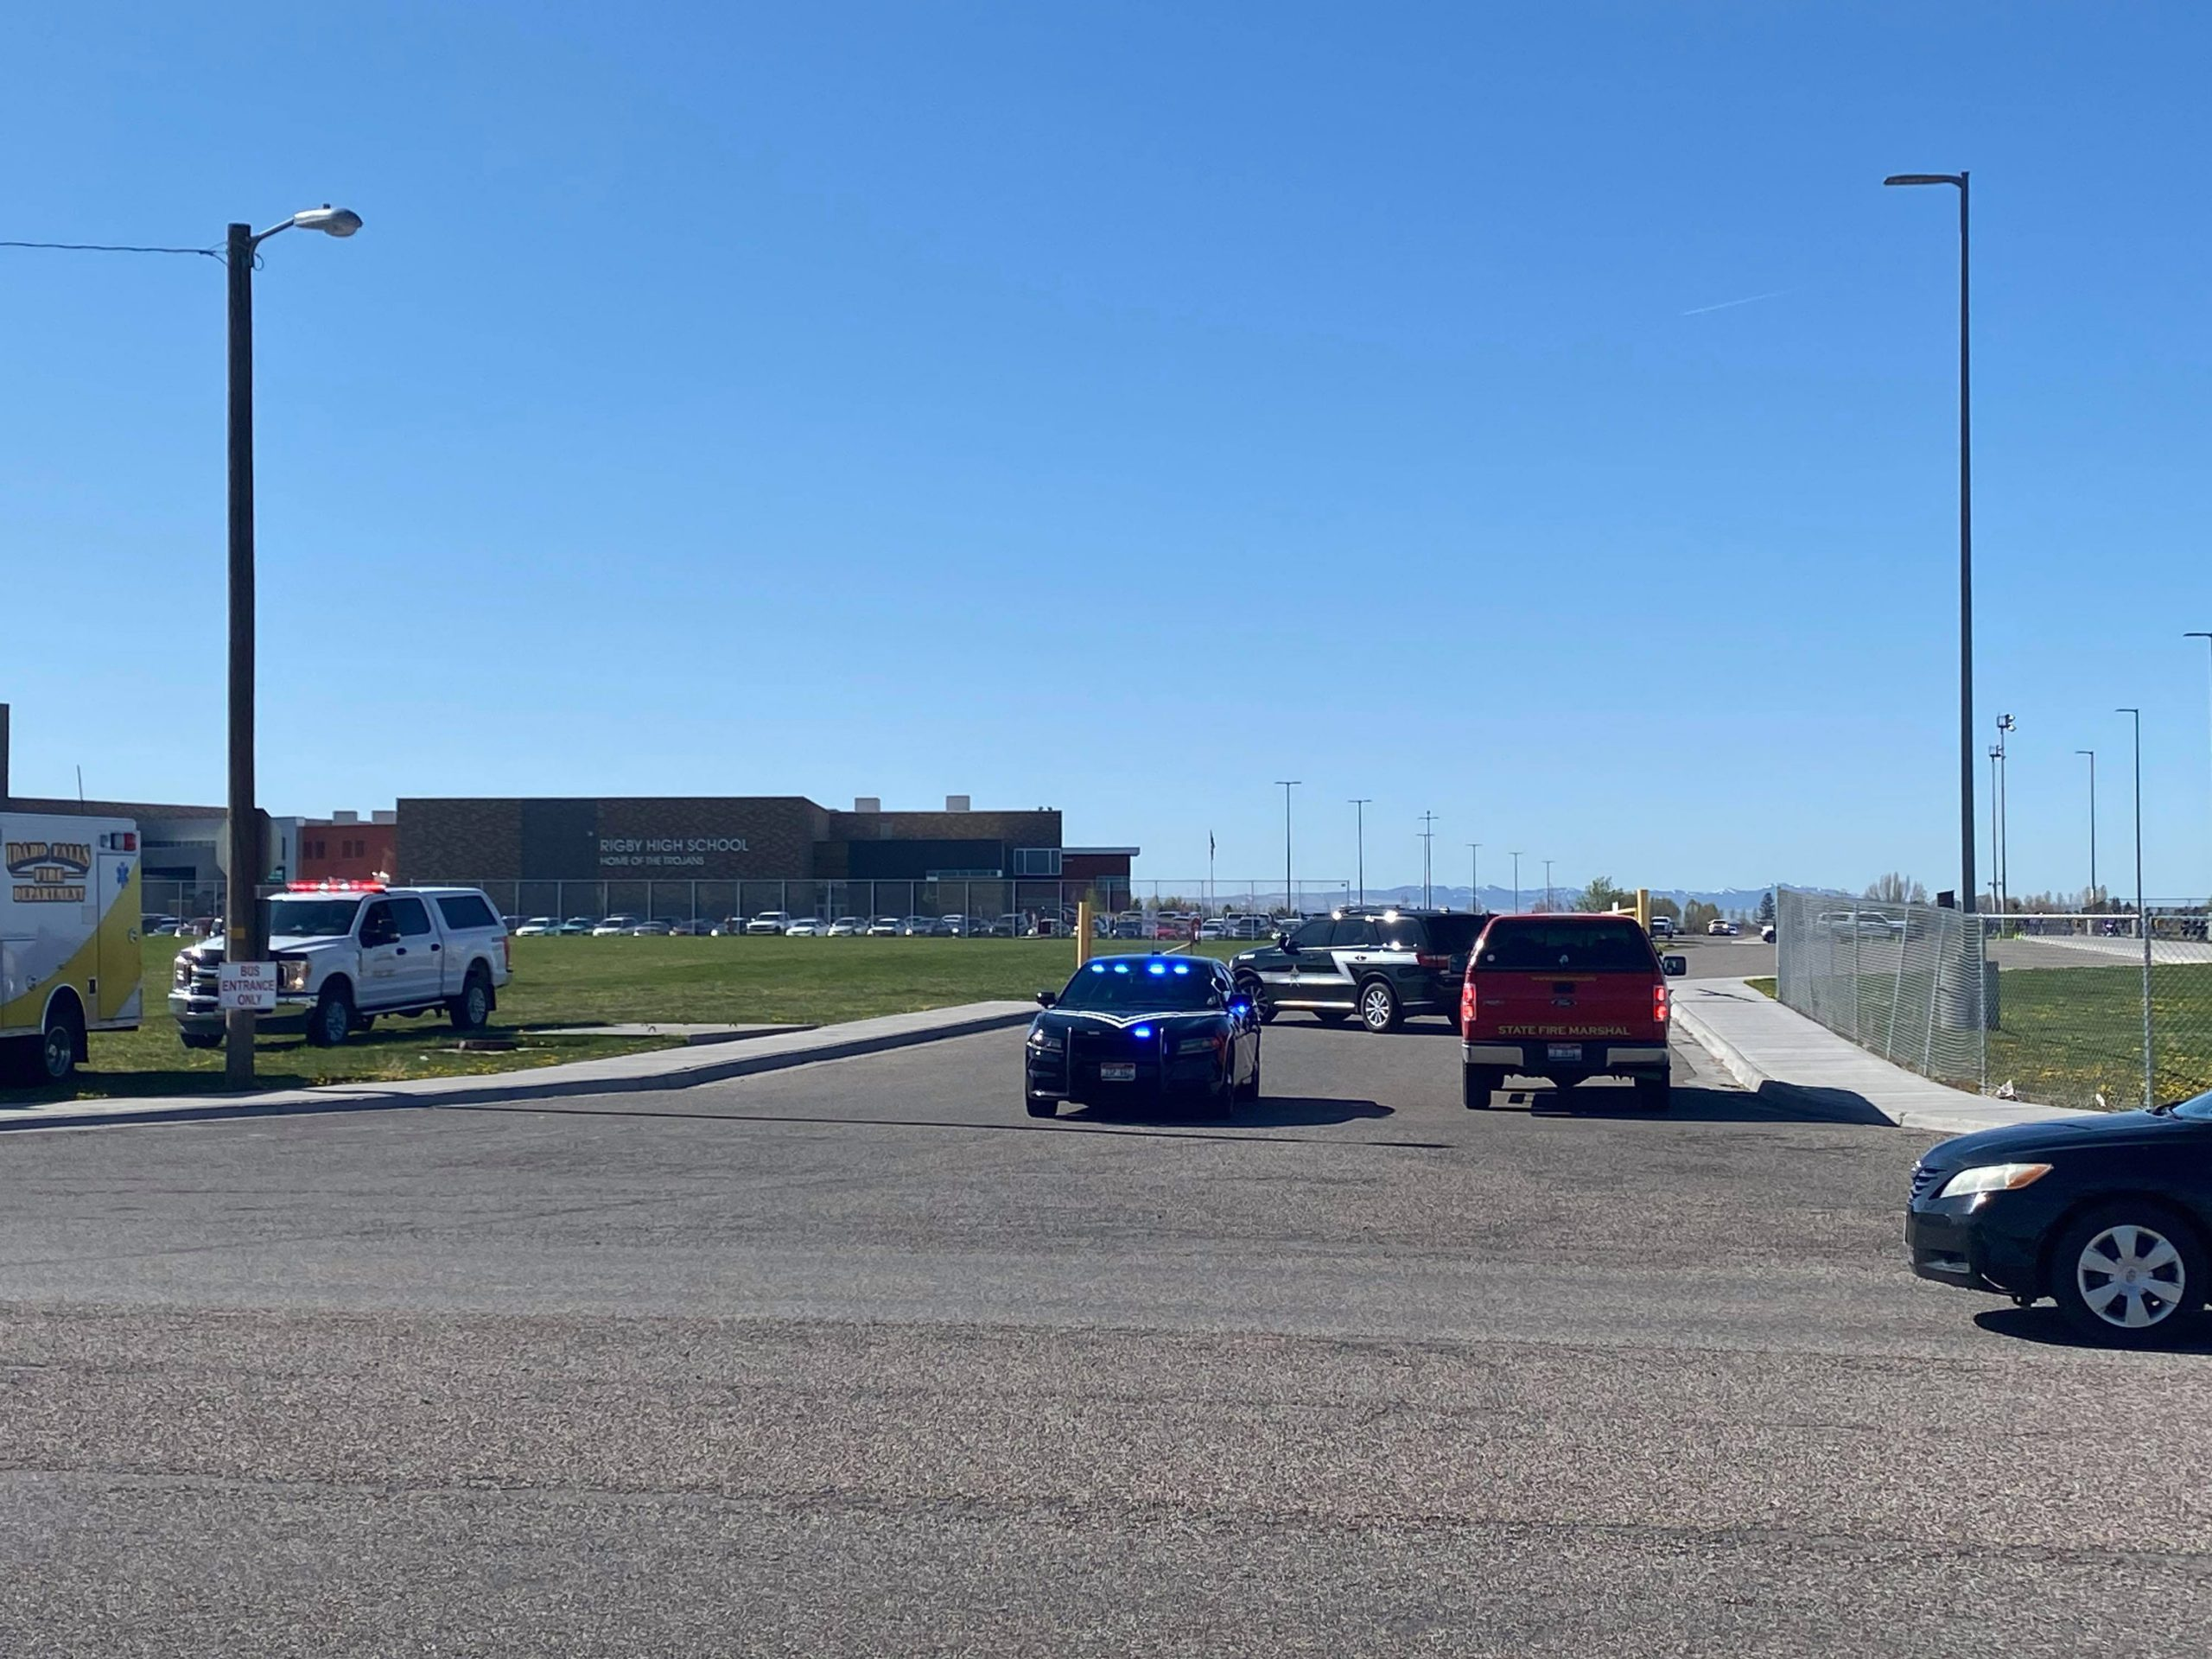 Officials were on the scene of a shooting at Rigby Middle School in Rigby, Idaho on Thursday